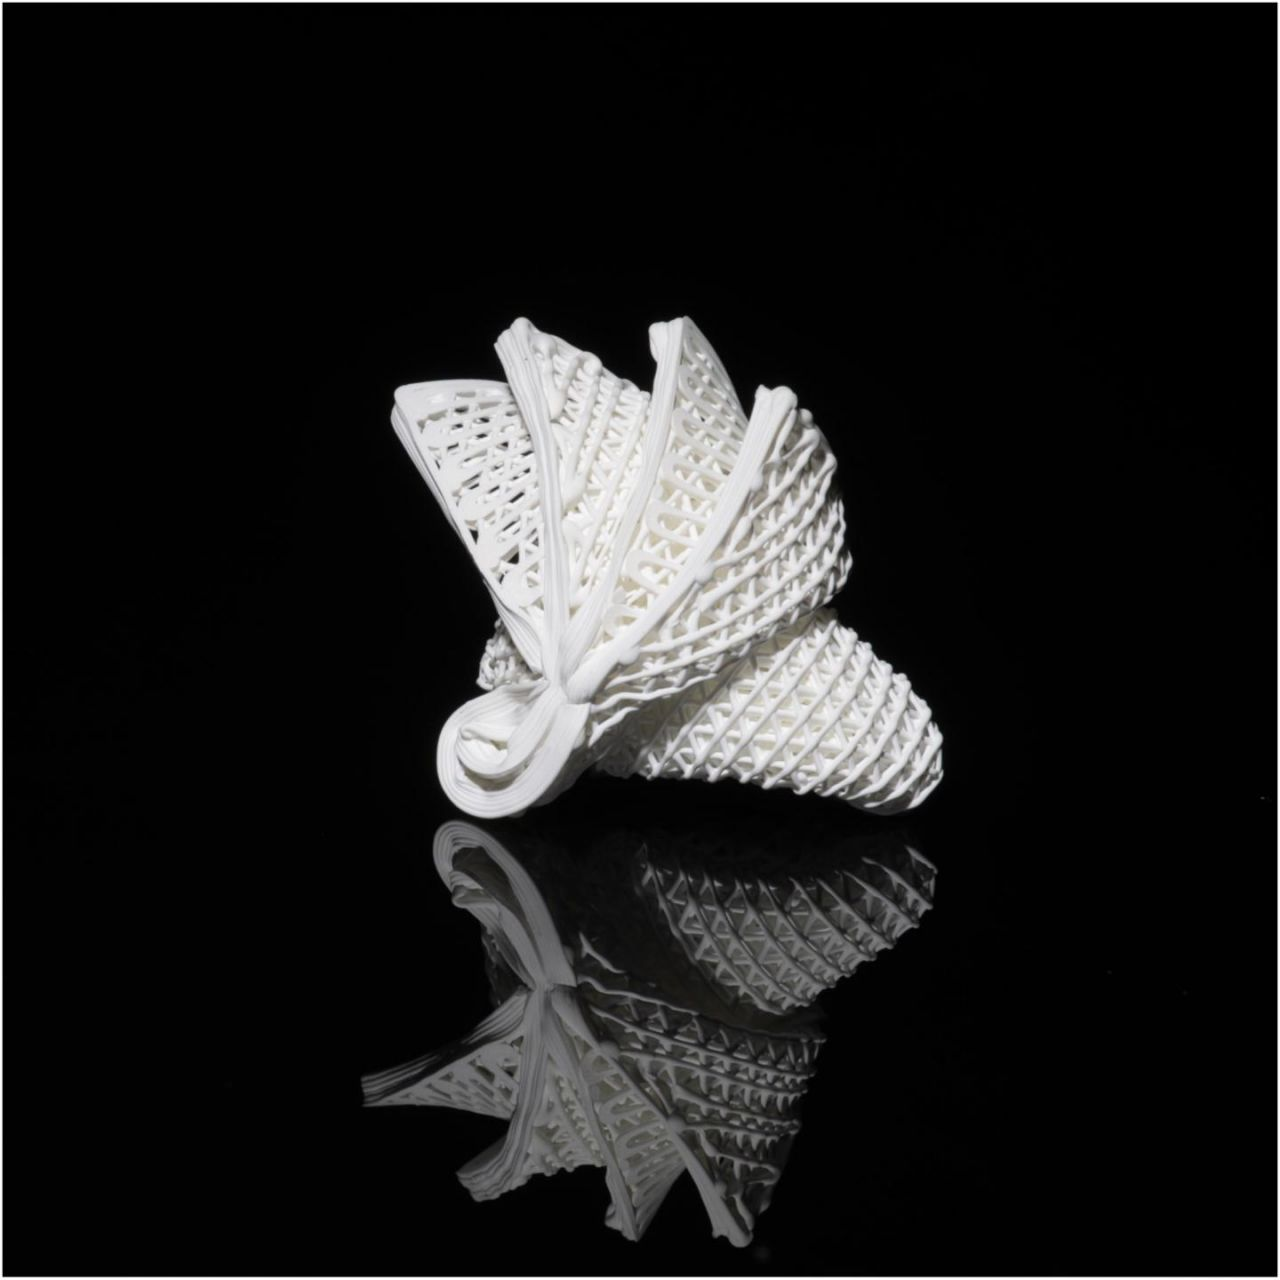 Hong Kong researchers develop world's first 4D printing for ceramics.